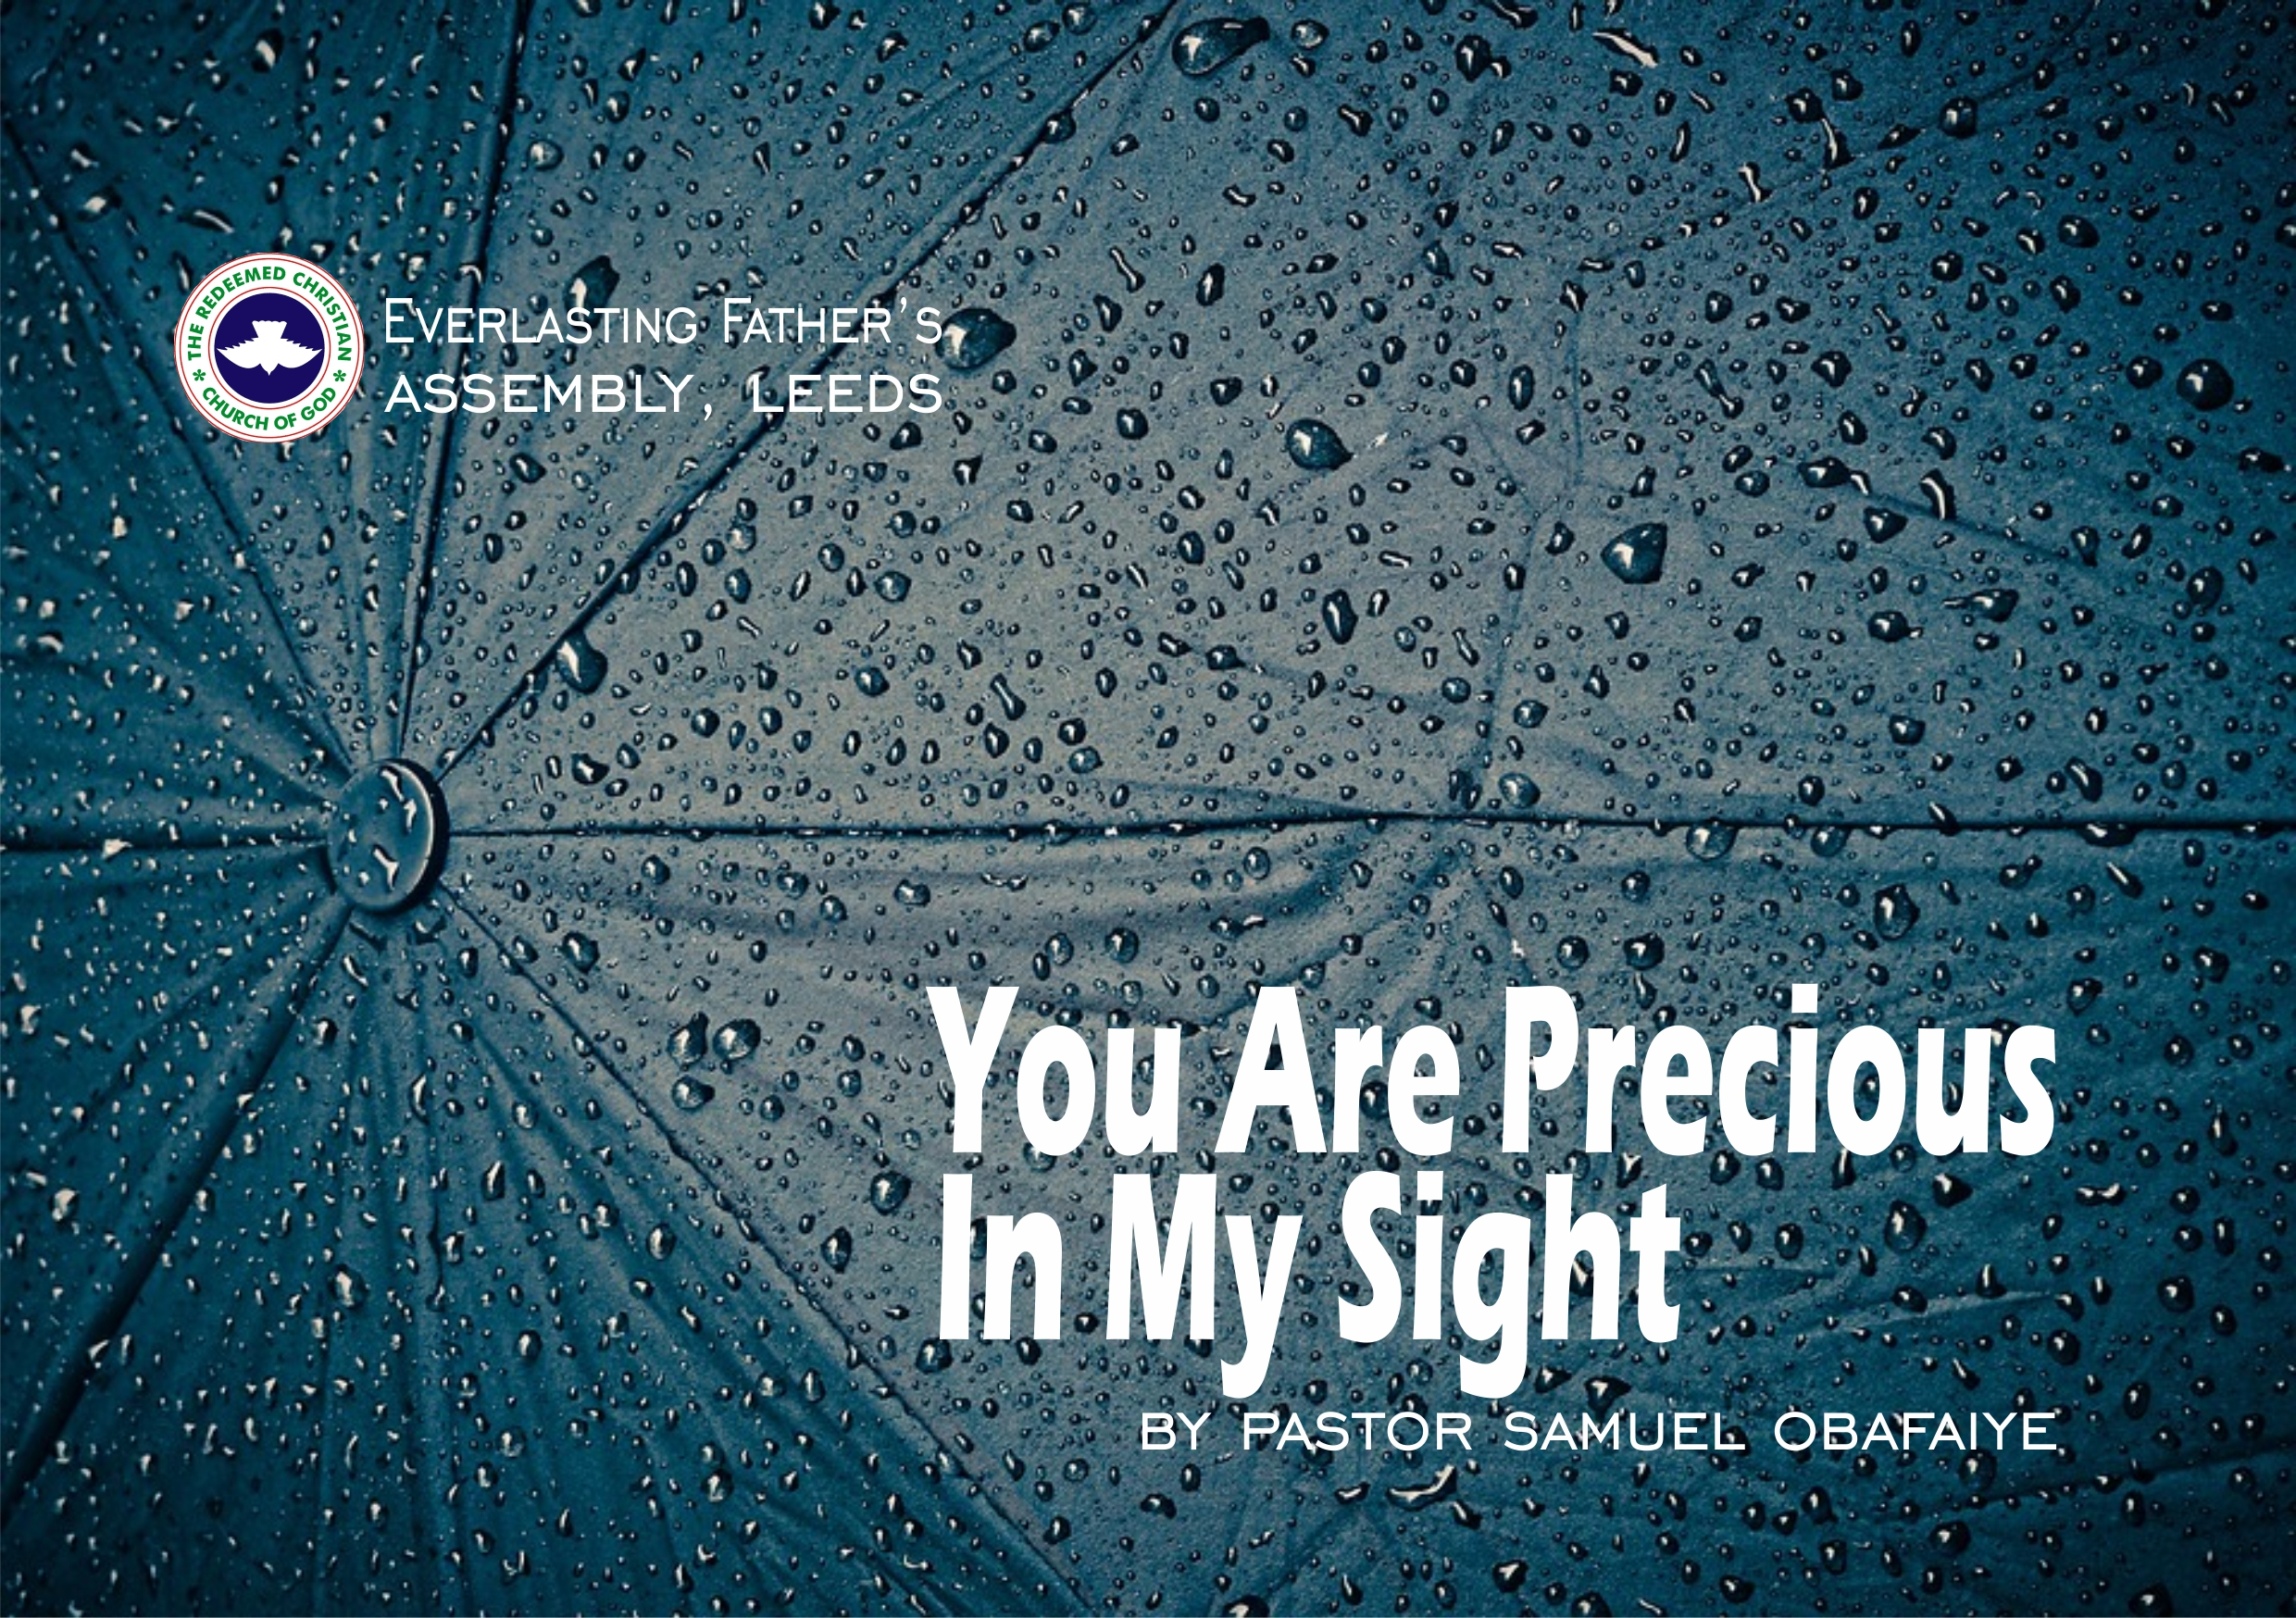 You Are Precious In My Sight, by Pastor Samuel Obafaiye